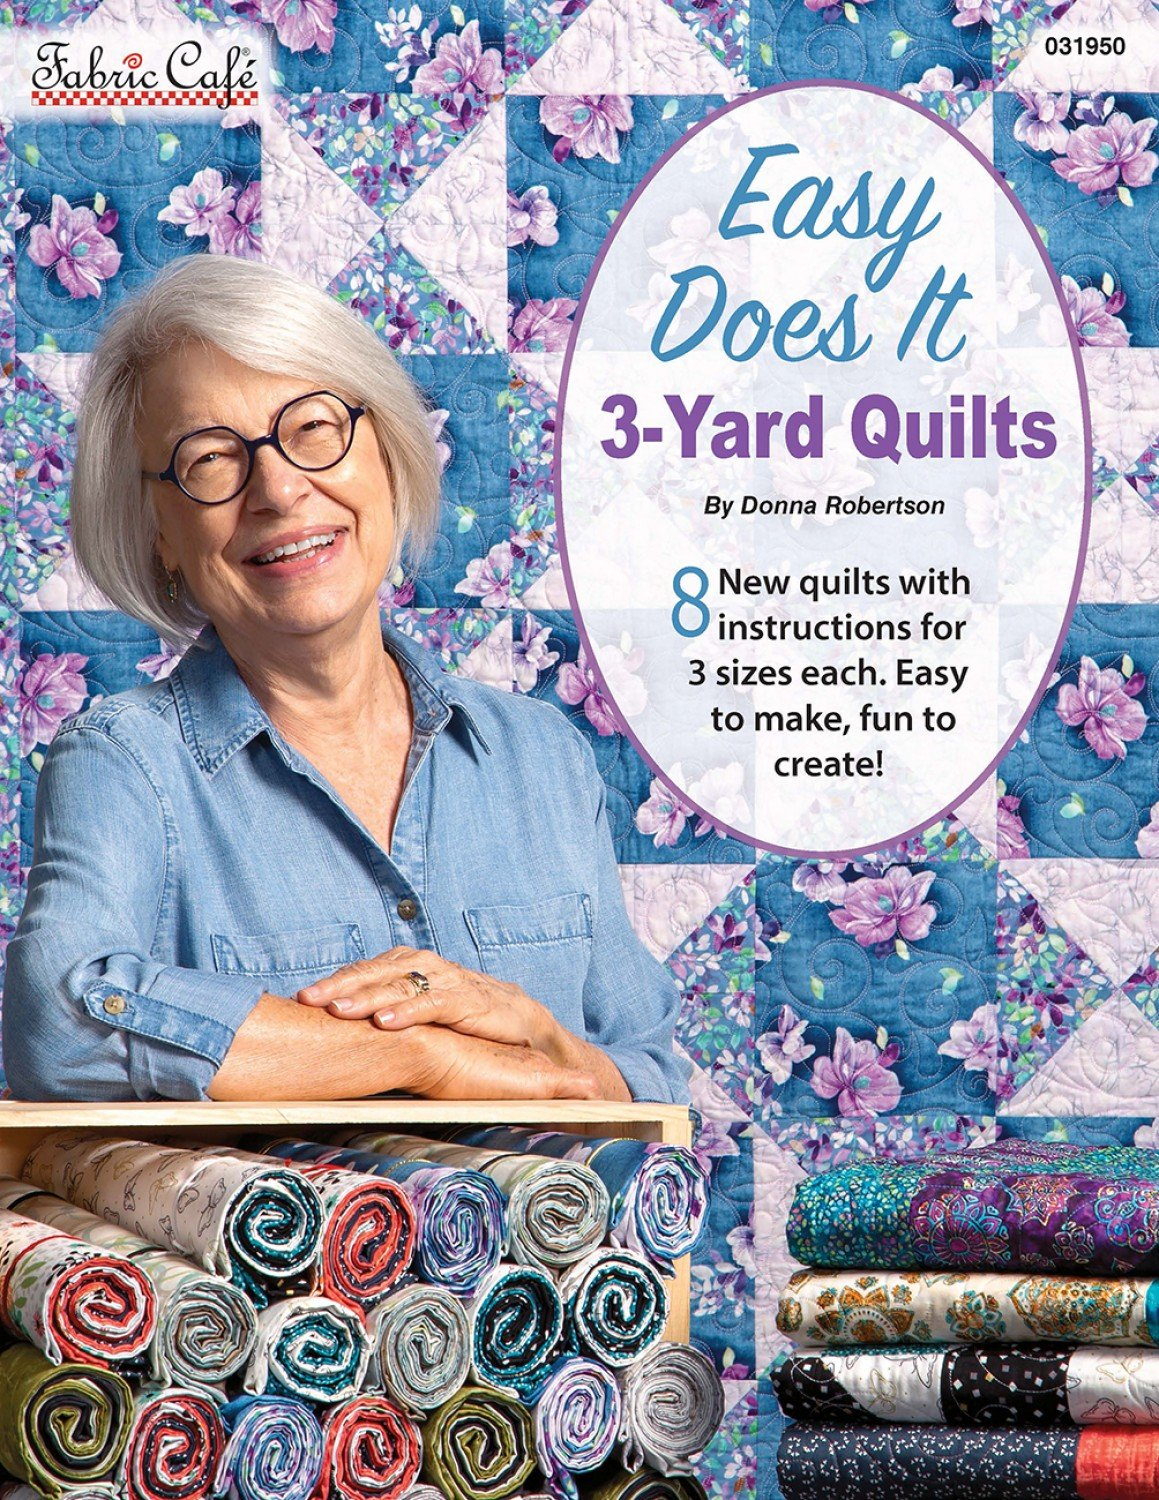 Easy Does It 3-Yard Quilts  ~ RELEASE DATE JAN 4/21 ~